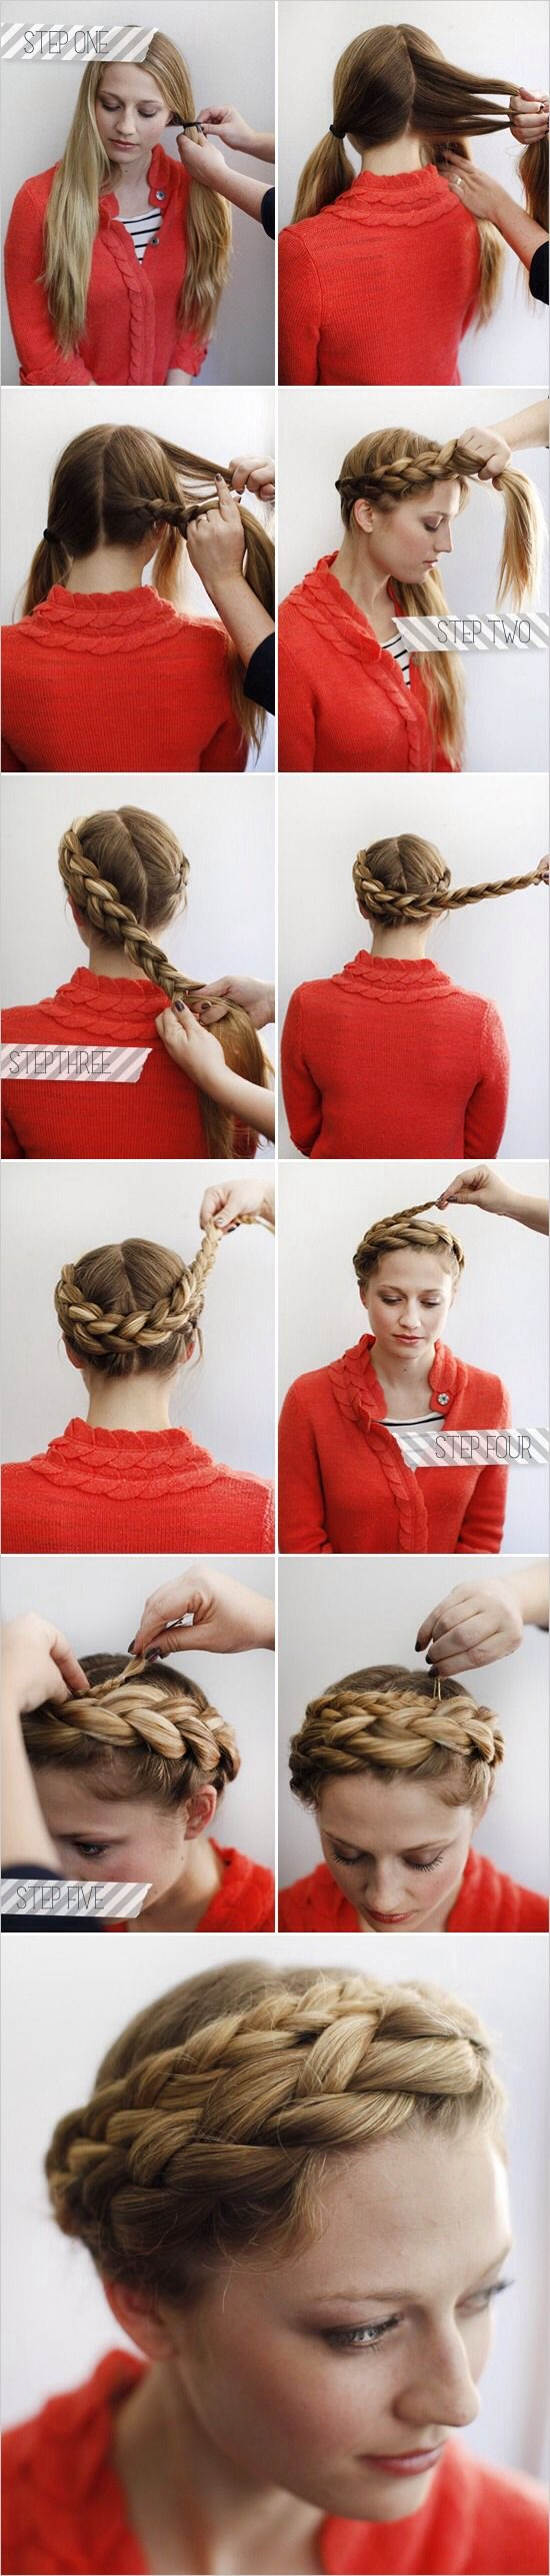 Around The Head Braid